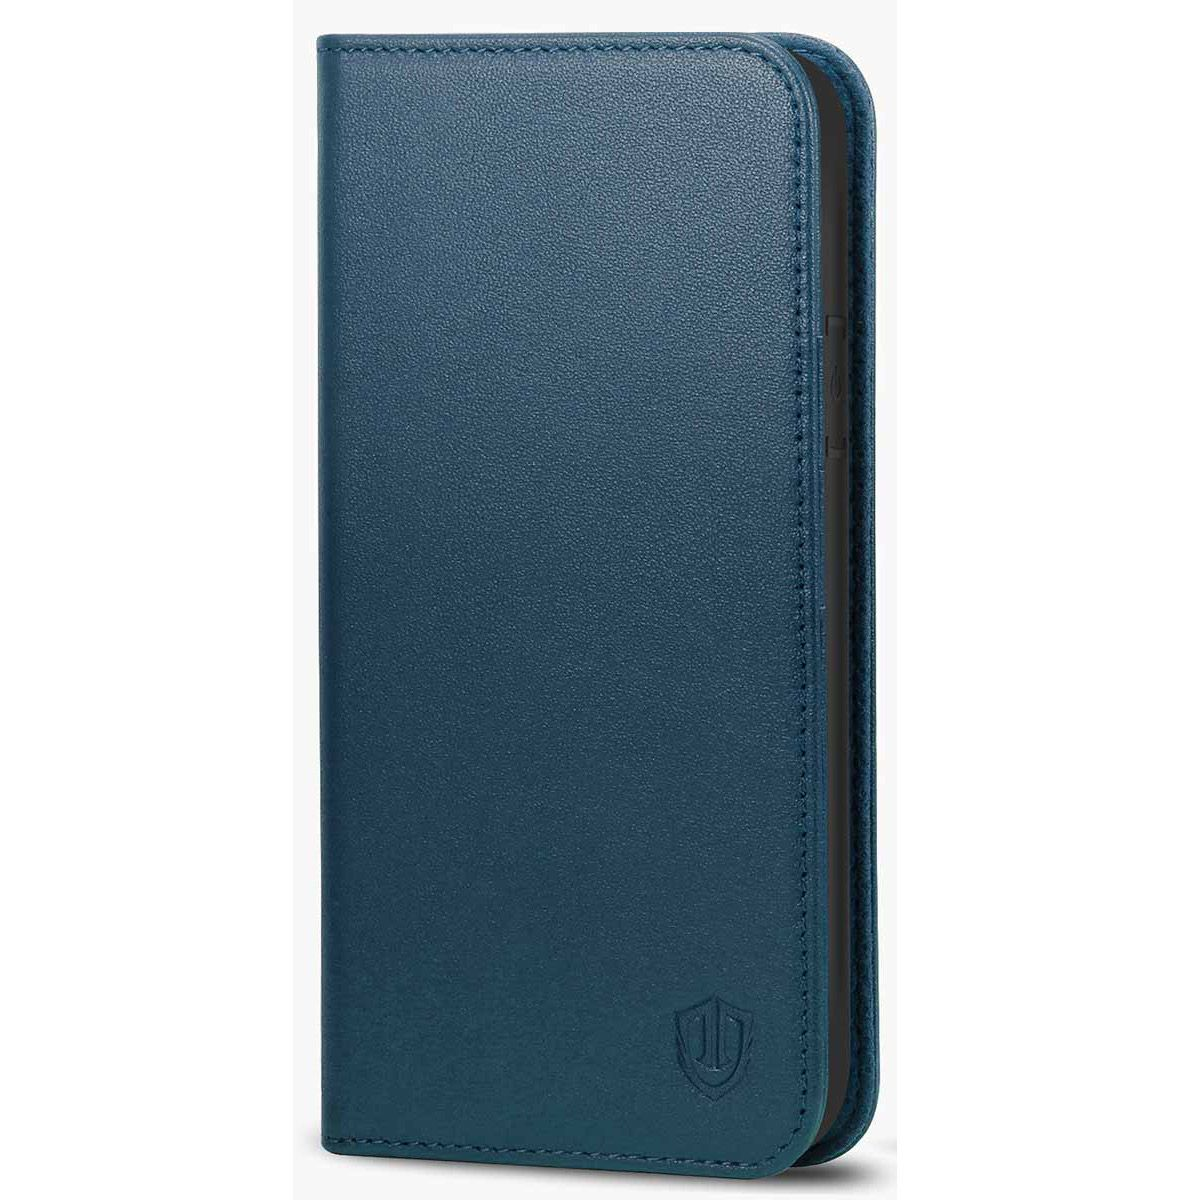 ed3bdb32ef41 SHIELDON iPhone XR wallet case - Genuine Leather Cover with Magnet and  Kickstand